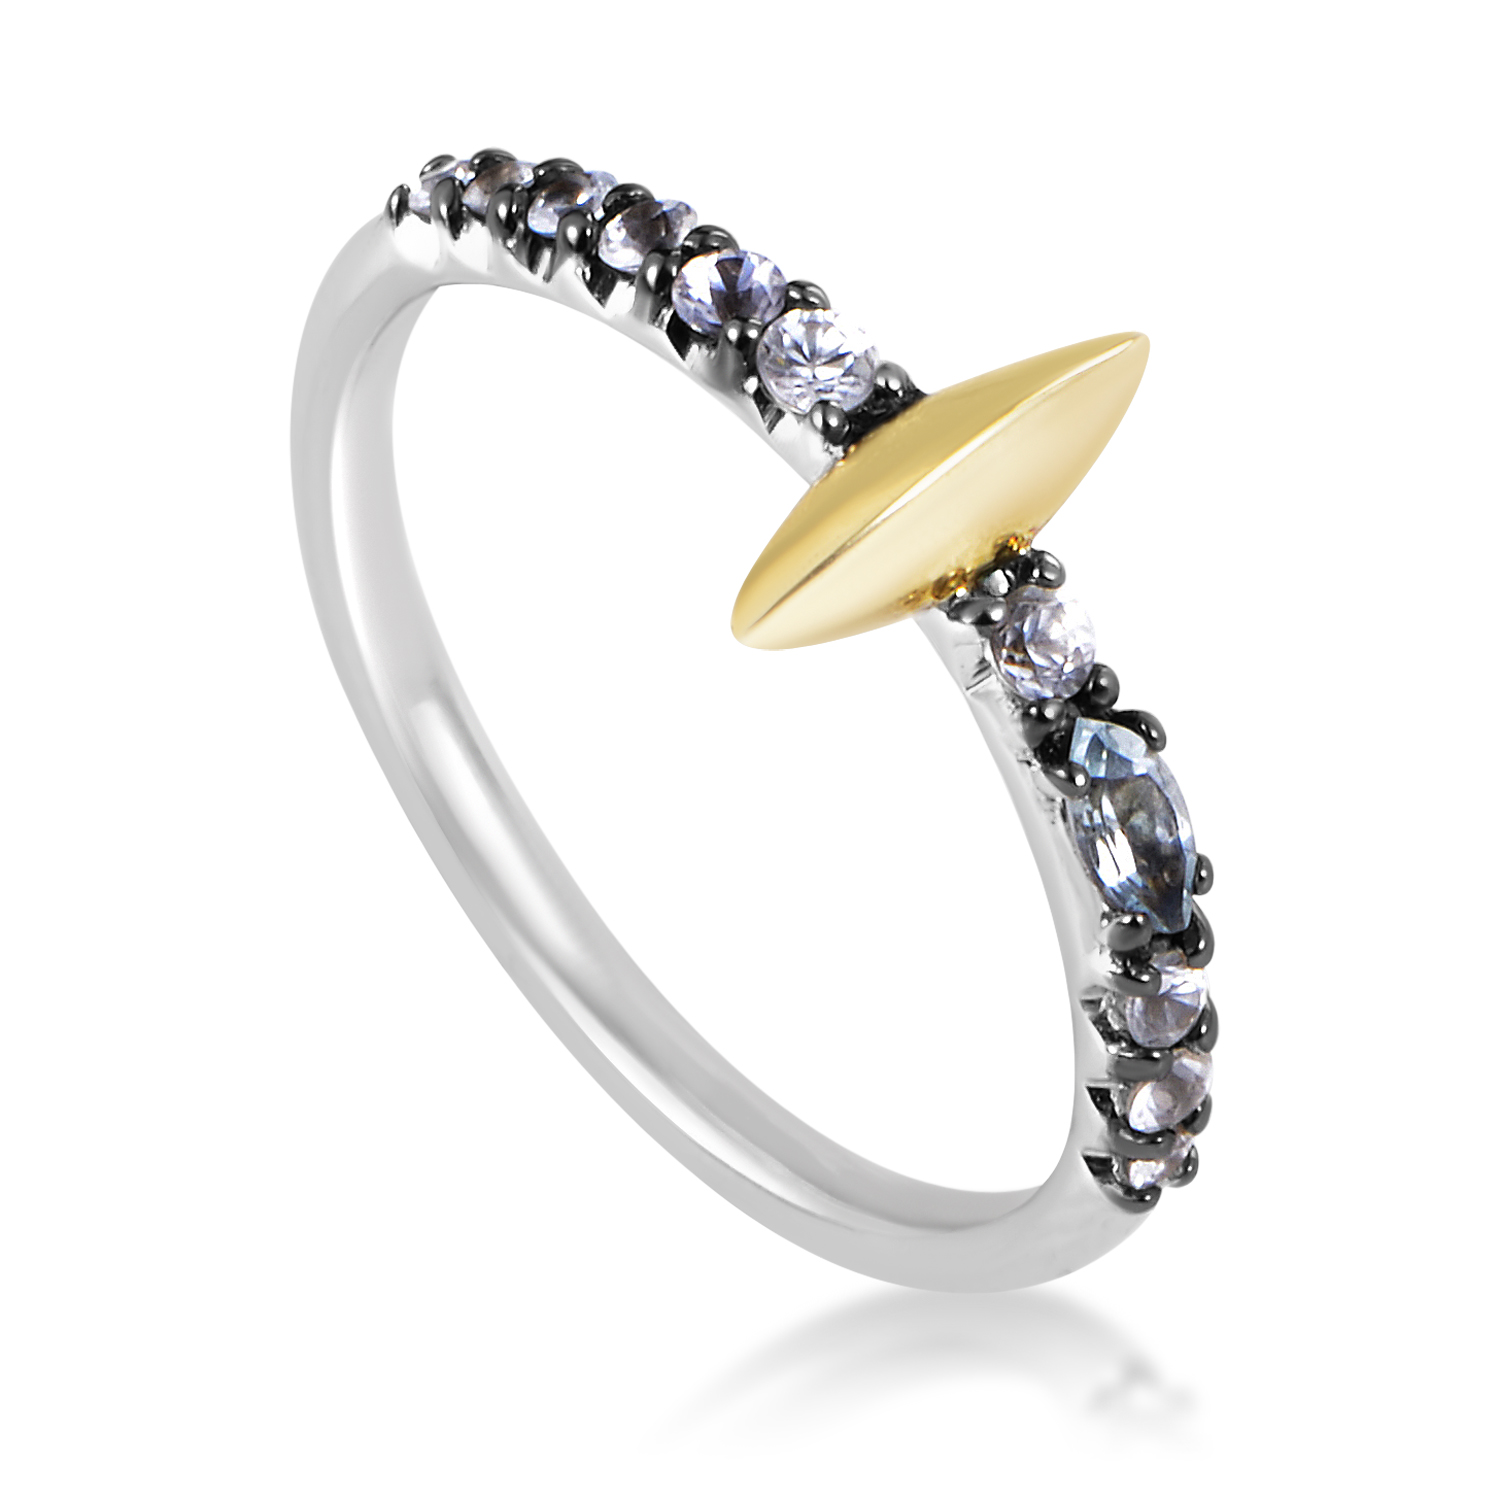 Marquis Women's Gold-Tone Sterling Silver Sapphire & Topaz Ring